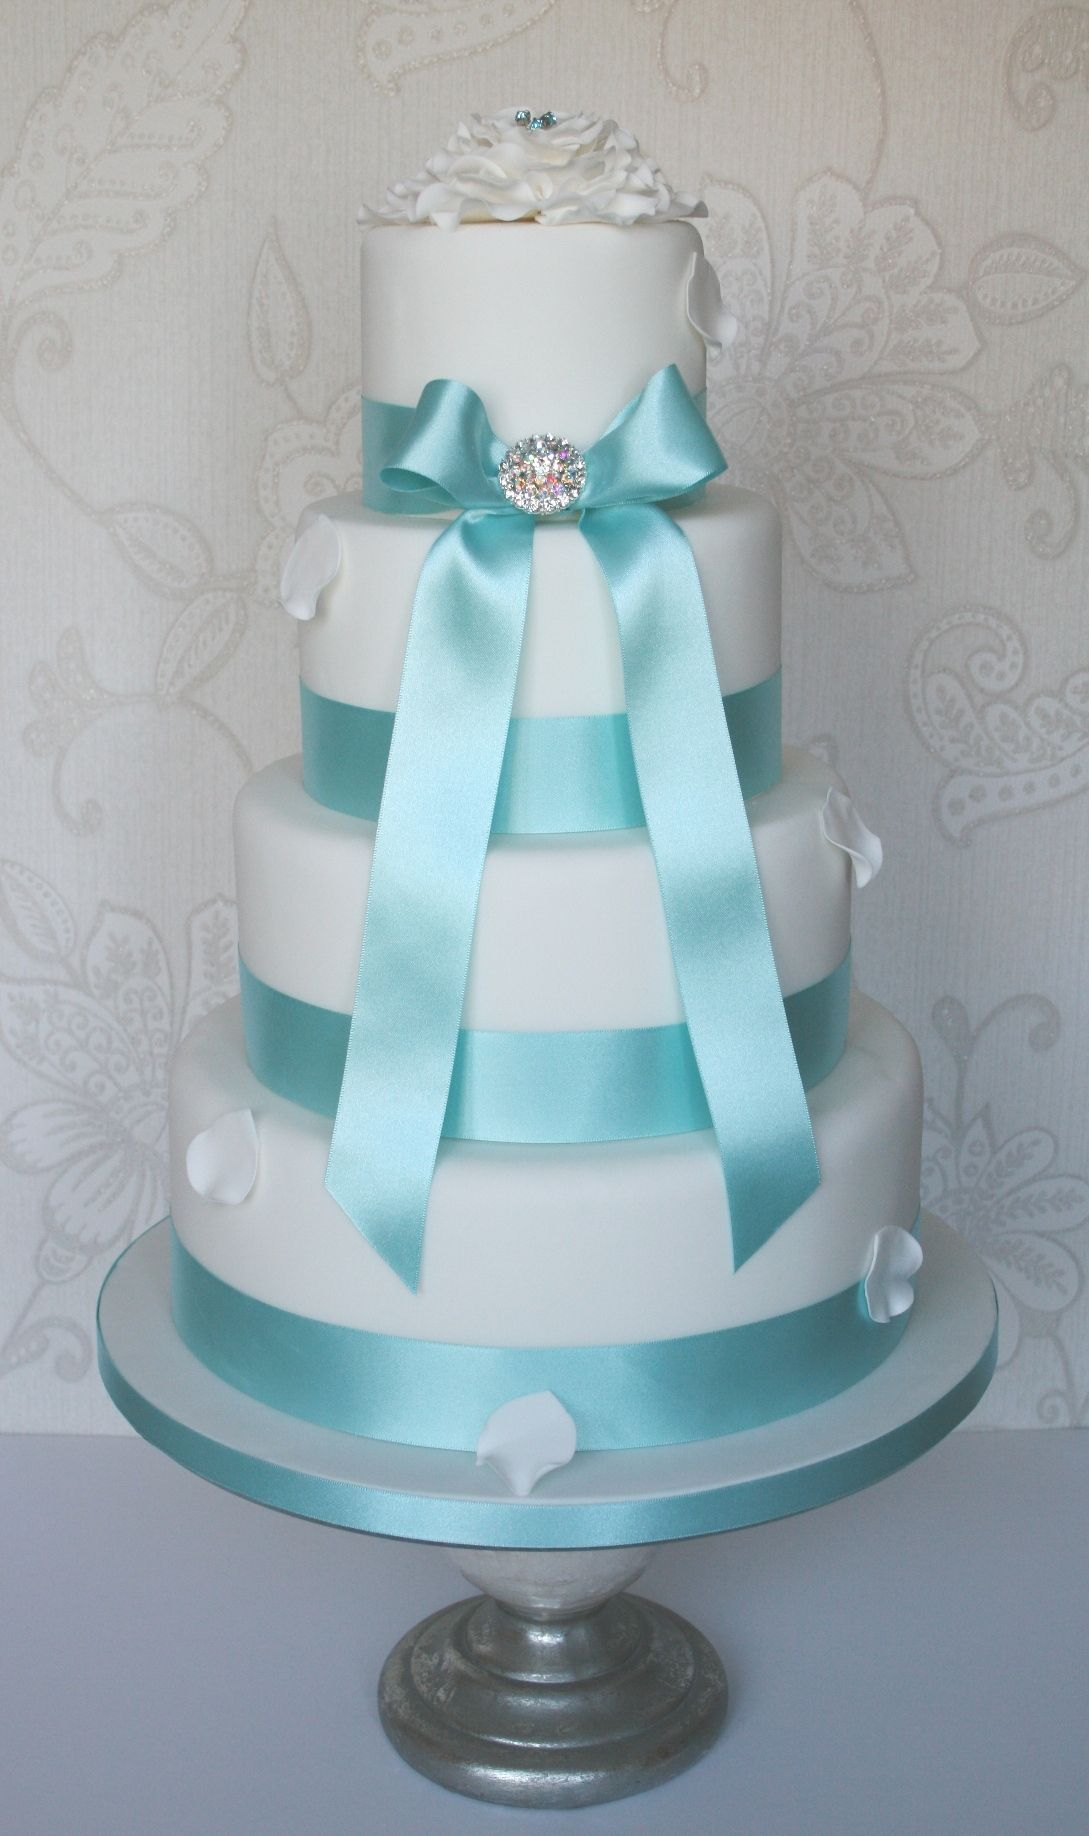 Tiffany Blue Is Such A Gorgeous Color When I Think Of Wedding Automatically Pair It With Bling